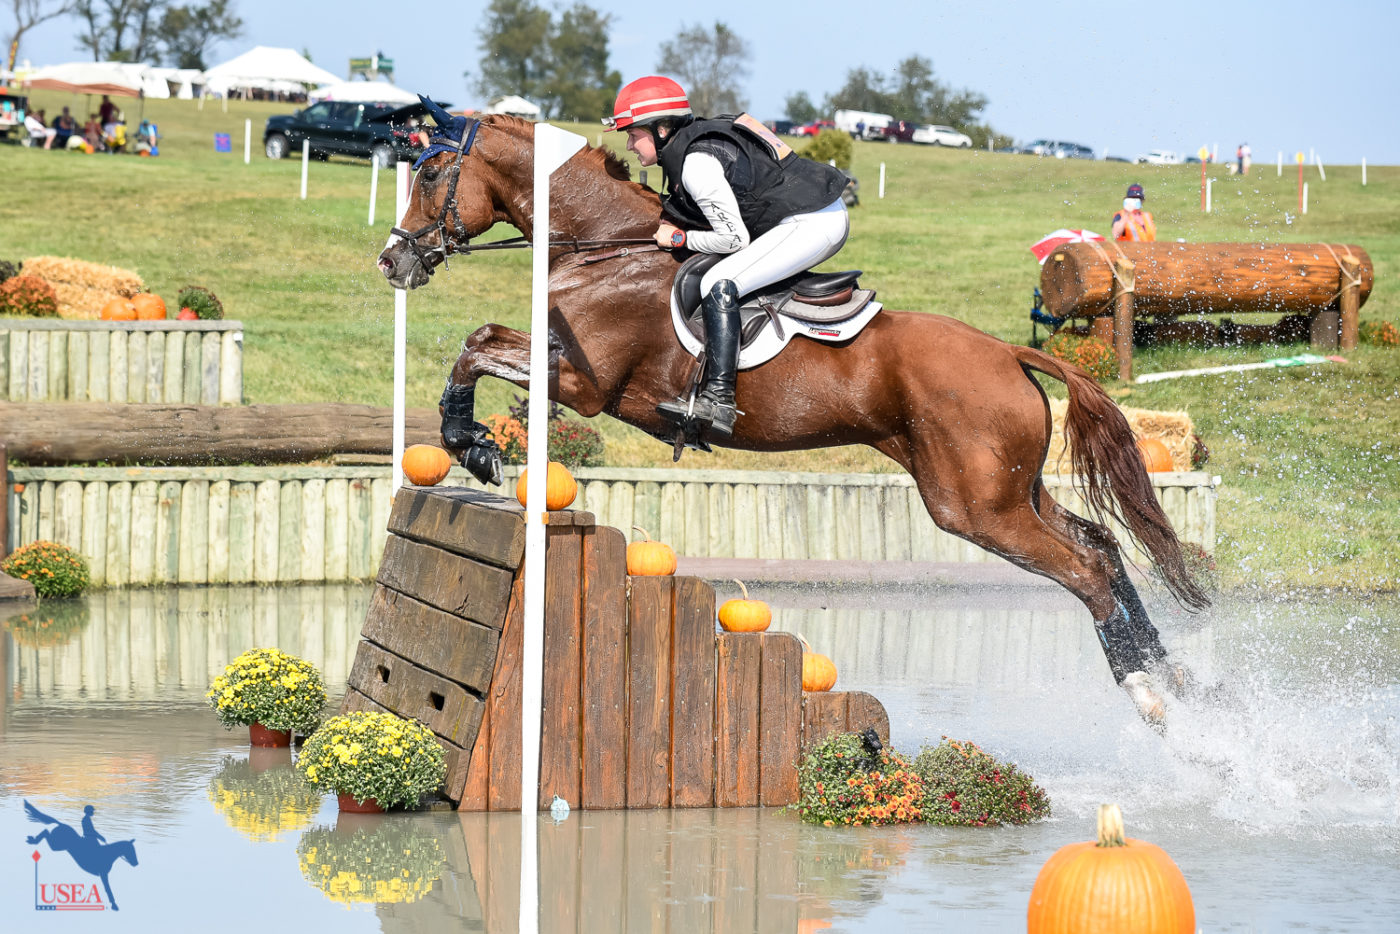 Mallory Hogan and Clarissa Purisima successfully completed their second CCI4*-S at Plantation Field. USEA/Jessica Duffy Photo.